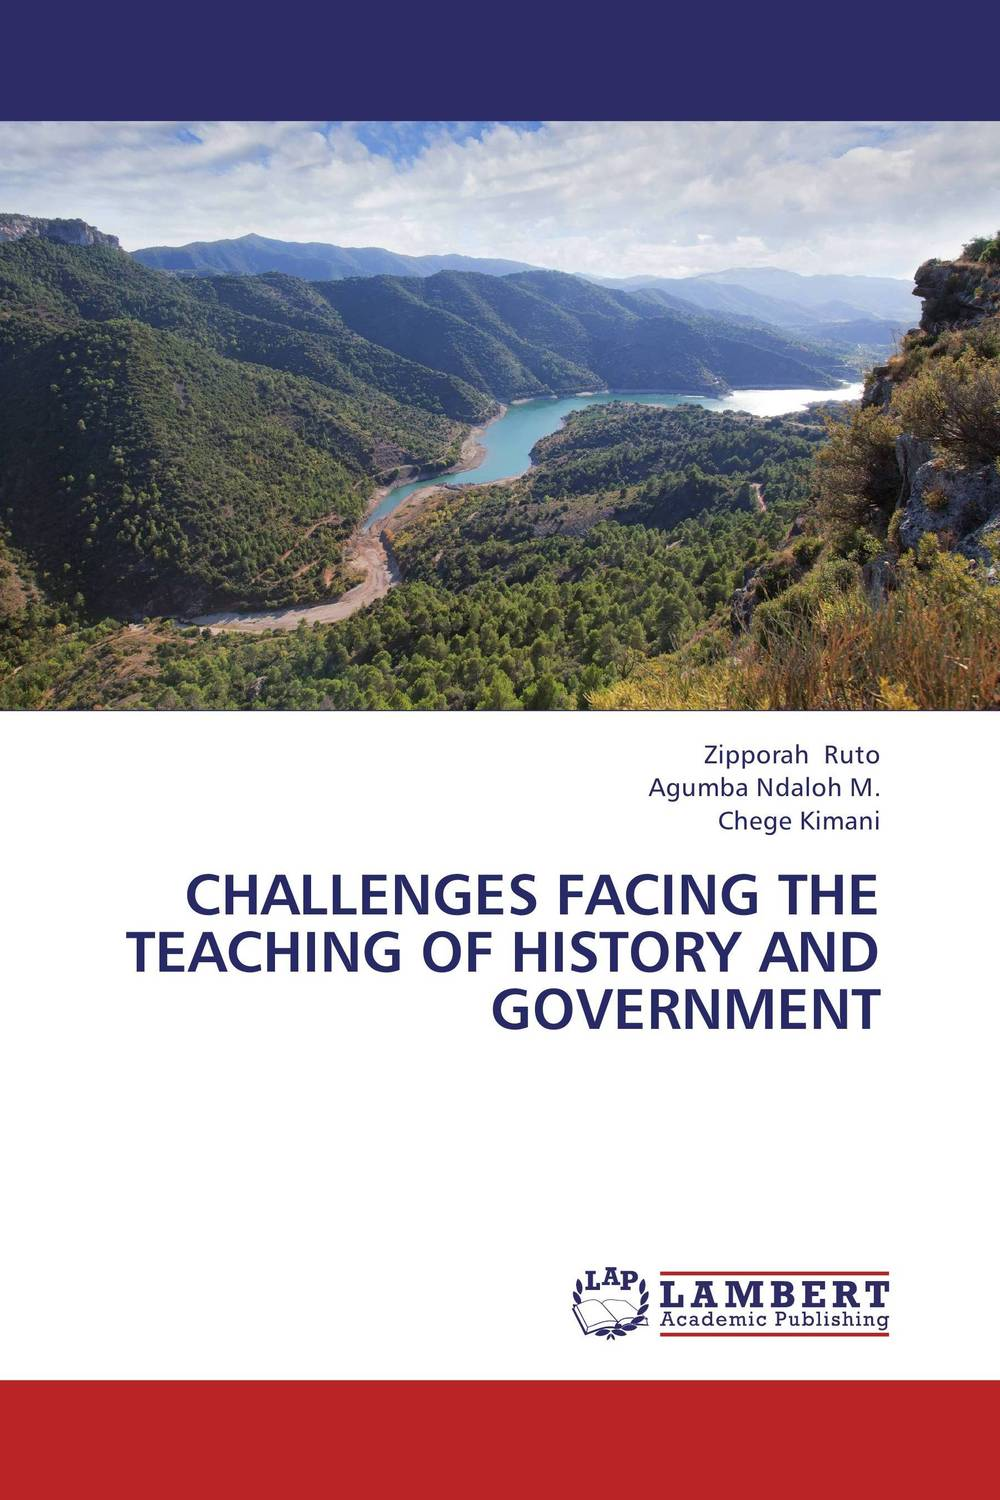 Challenges Facing the Teaching of History and Government administrative challenges facing public secondary schools